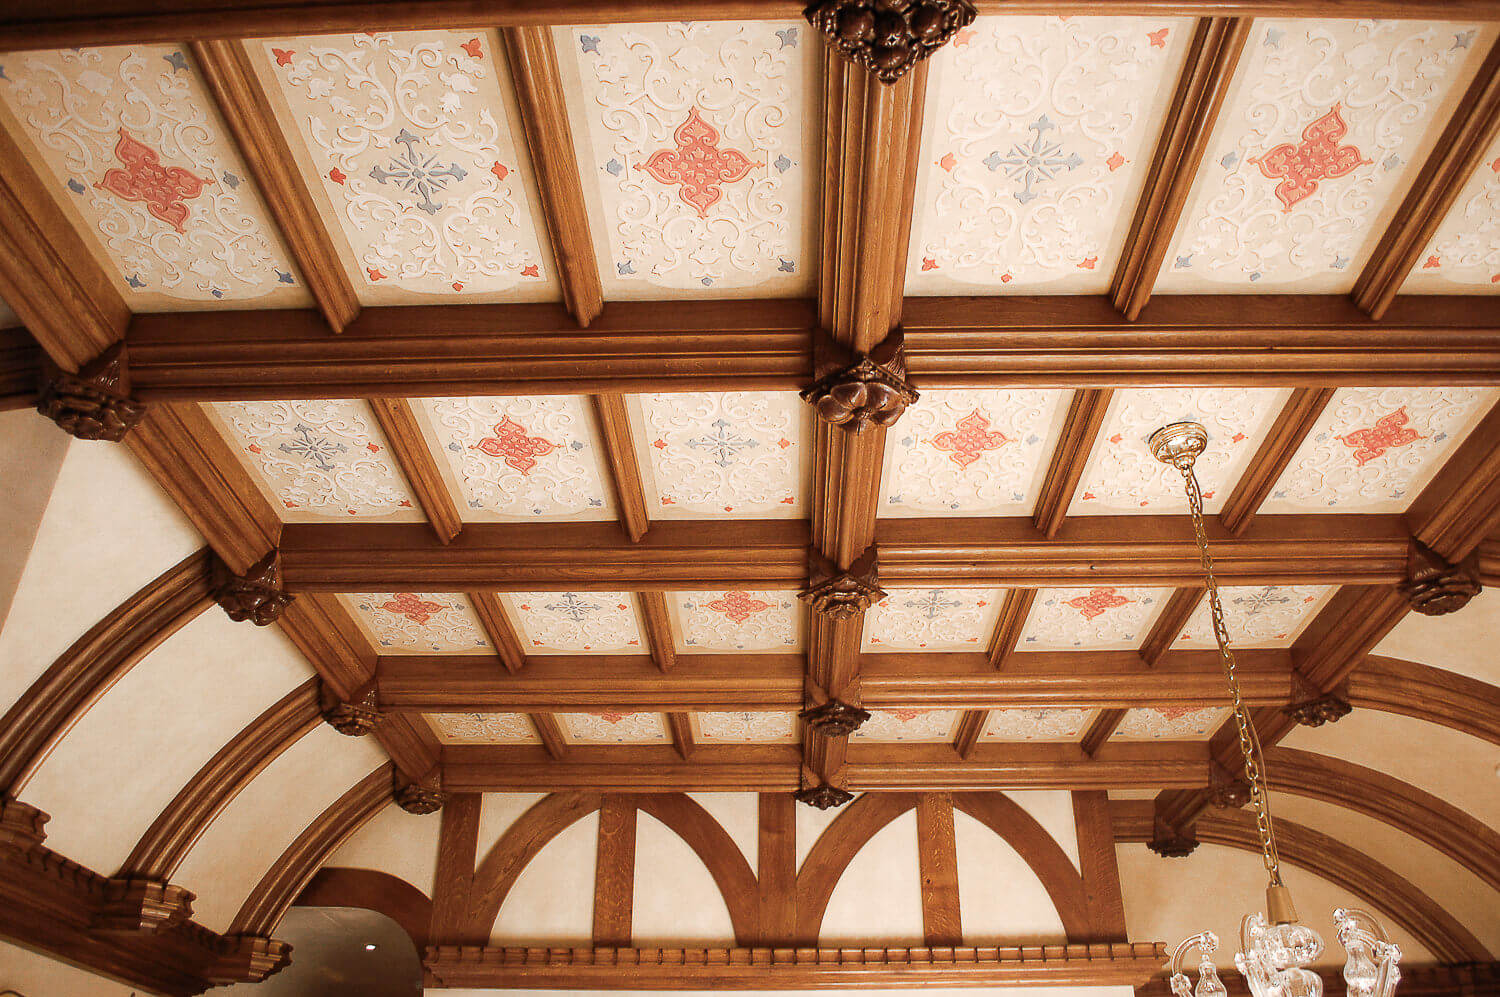 Large Tudor style oak beam ceiling with hand carved ceiling bosses bespoke period Joinery